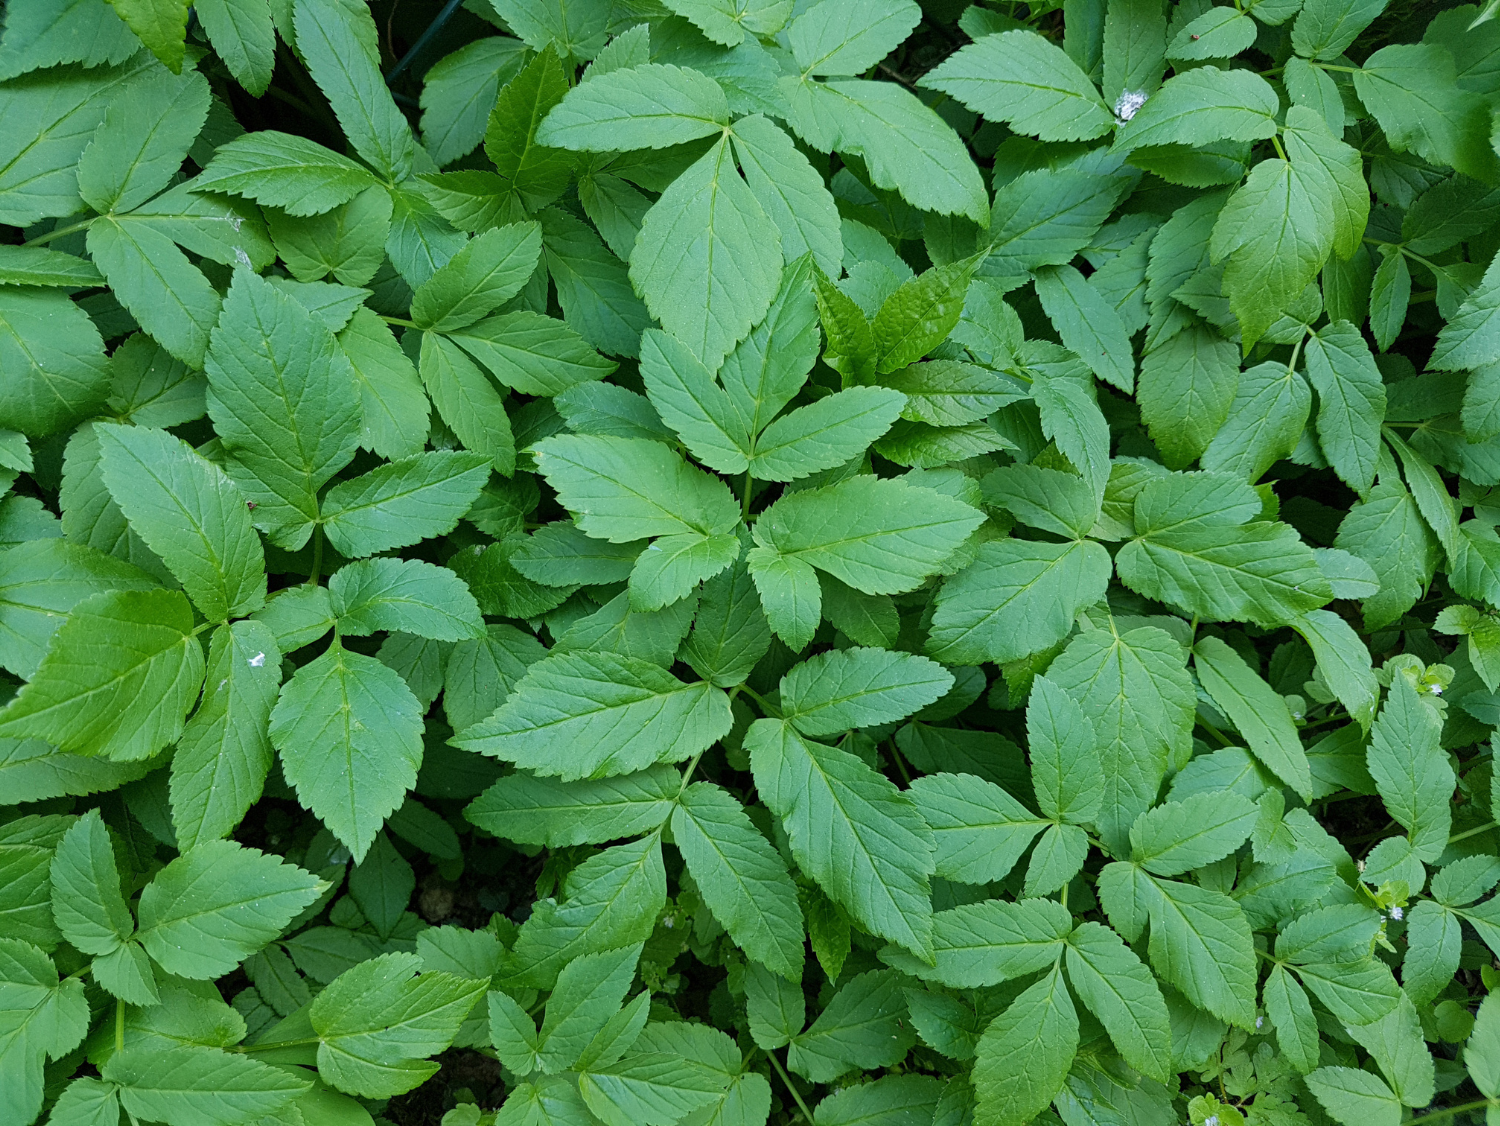 Ground Elder - A Foraging Guide to Its Food, Medicine and Other Uses